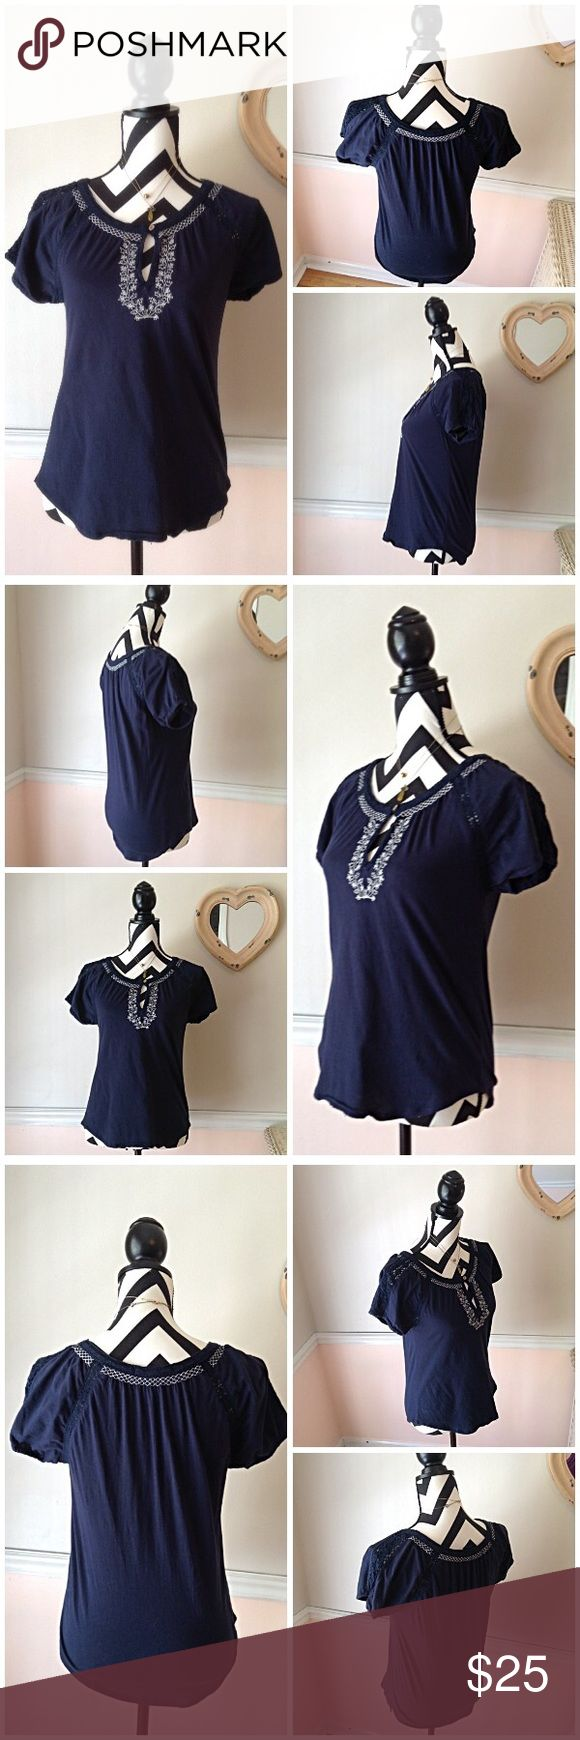 Lucky Brand My Favorite Embroidered  Boho Navy Tee Lucky Brand My Favorite Embroidered Boho Navy Tee. Size XS. Runs big. Used, Good Condition. No stains, No hole, No rips. Crochet details on sleeves and neck line. Bust is 38 inches. Length is 24 inches. Tee is 100% cotton.  Feel free to ask questions. Offers Welcome. 🚫NO TRADES🚫 Lucky Brand Tops Tees - Short Sleeve